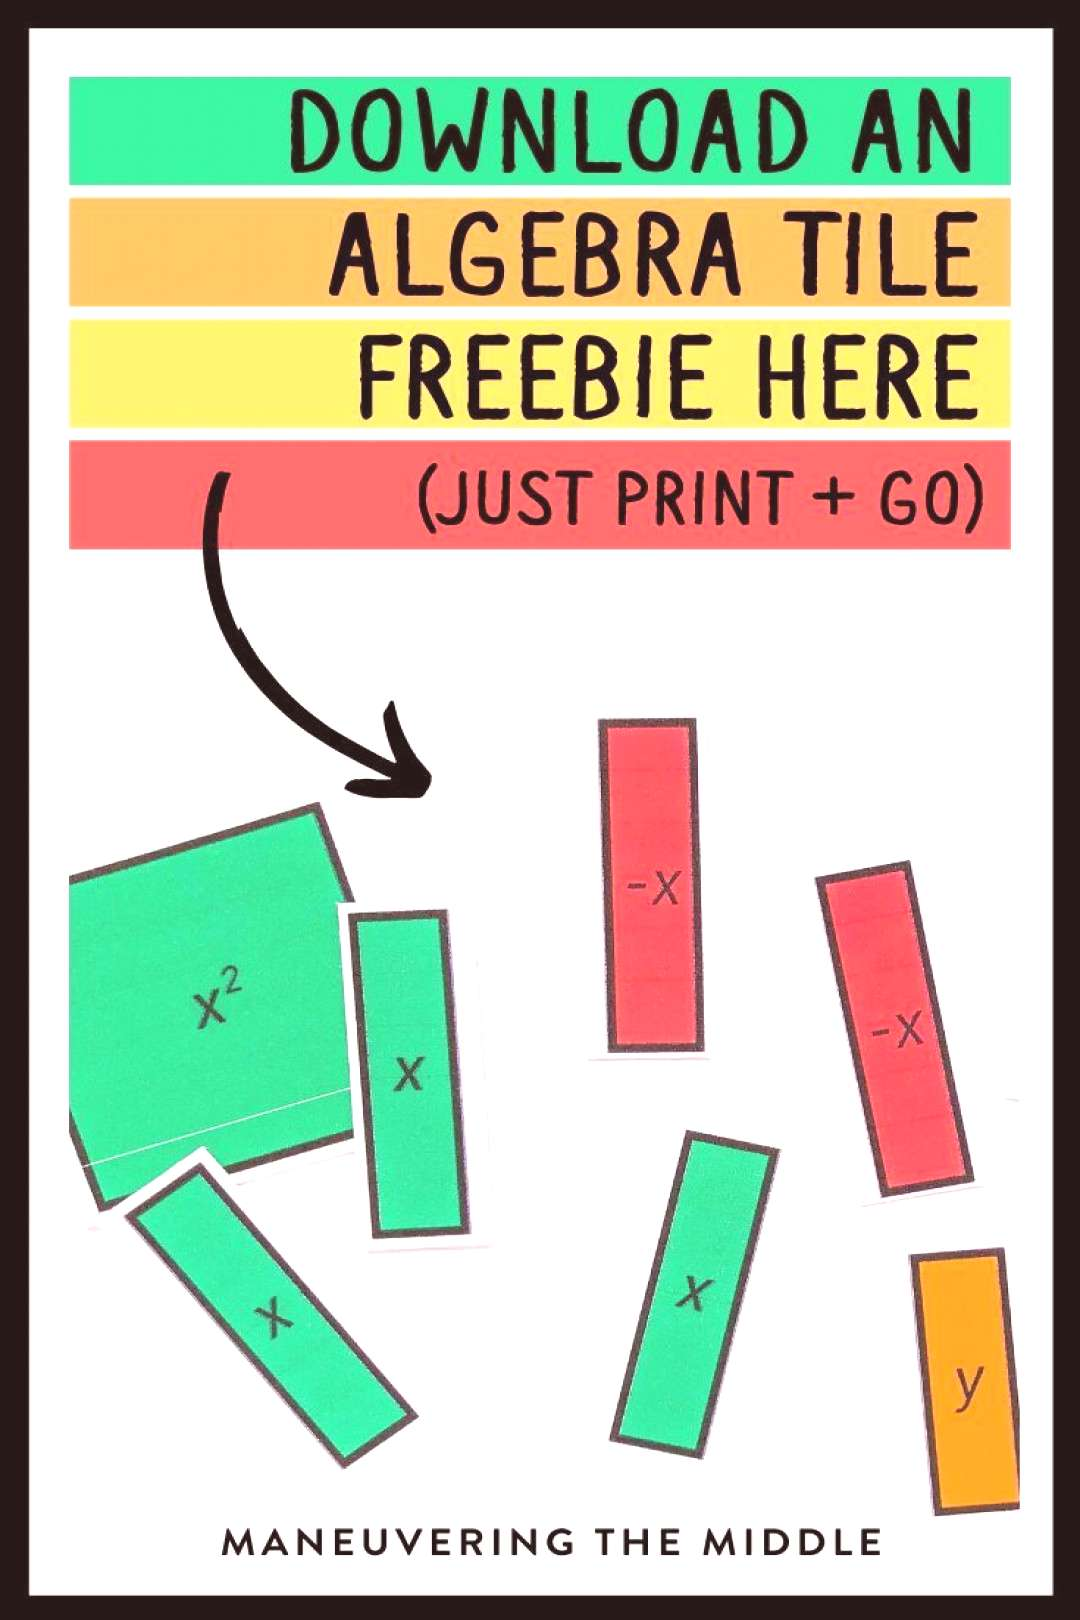 Algebra Tiles Free Download,Learn why you should use algebra tiles AND get a free set! Just d... Al